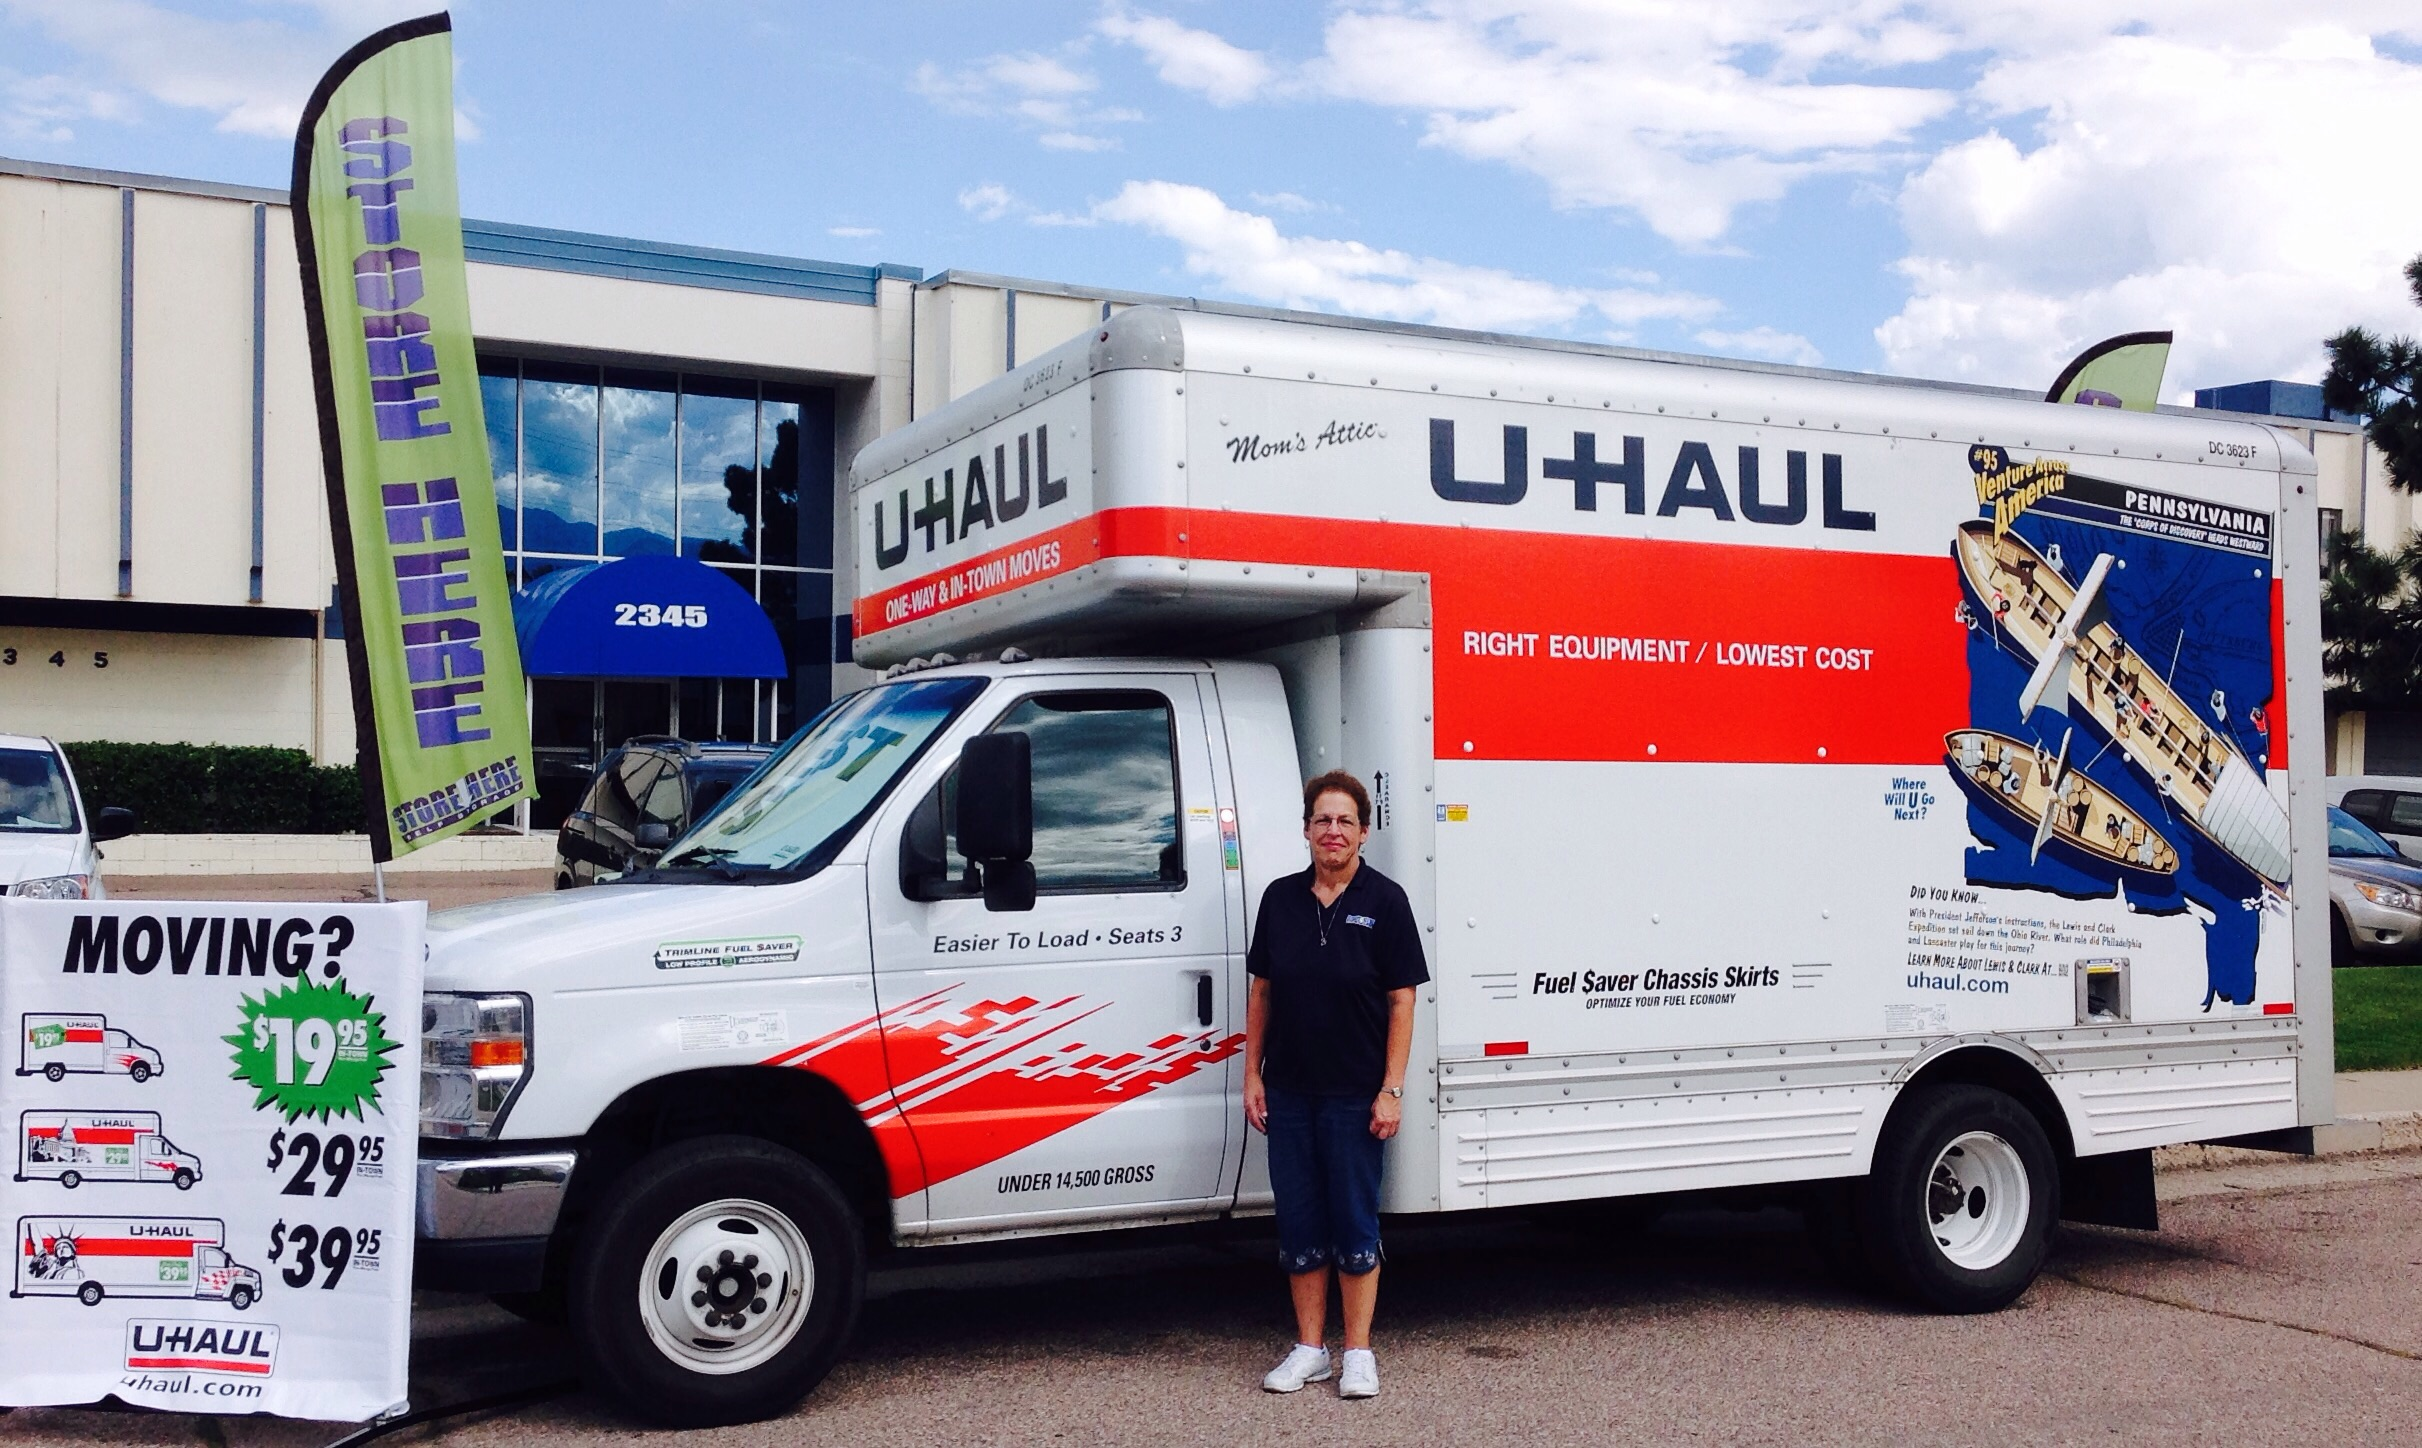 Colorado Springs Gets New U Haul Location At Store Here